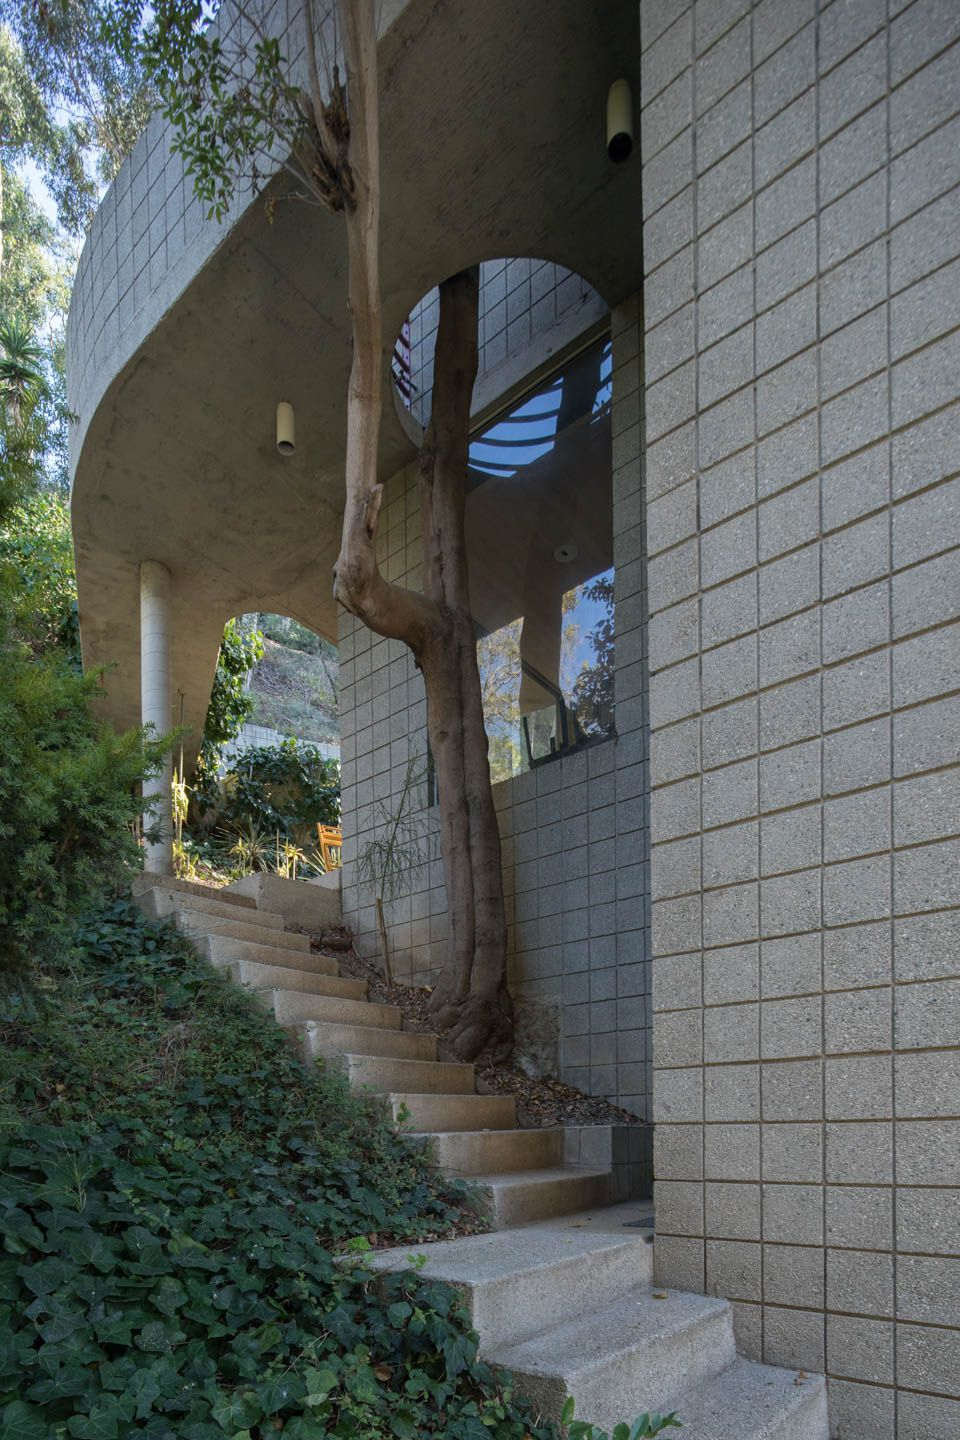 (left) A staircase passes by a tree, which has a cut-out in the upper floor so the tree can grown unbothered. (Right) The house from the front, with the stacked balconies making up the front facade.